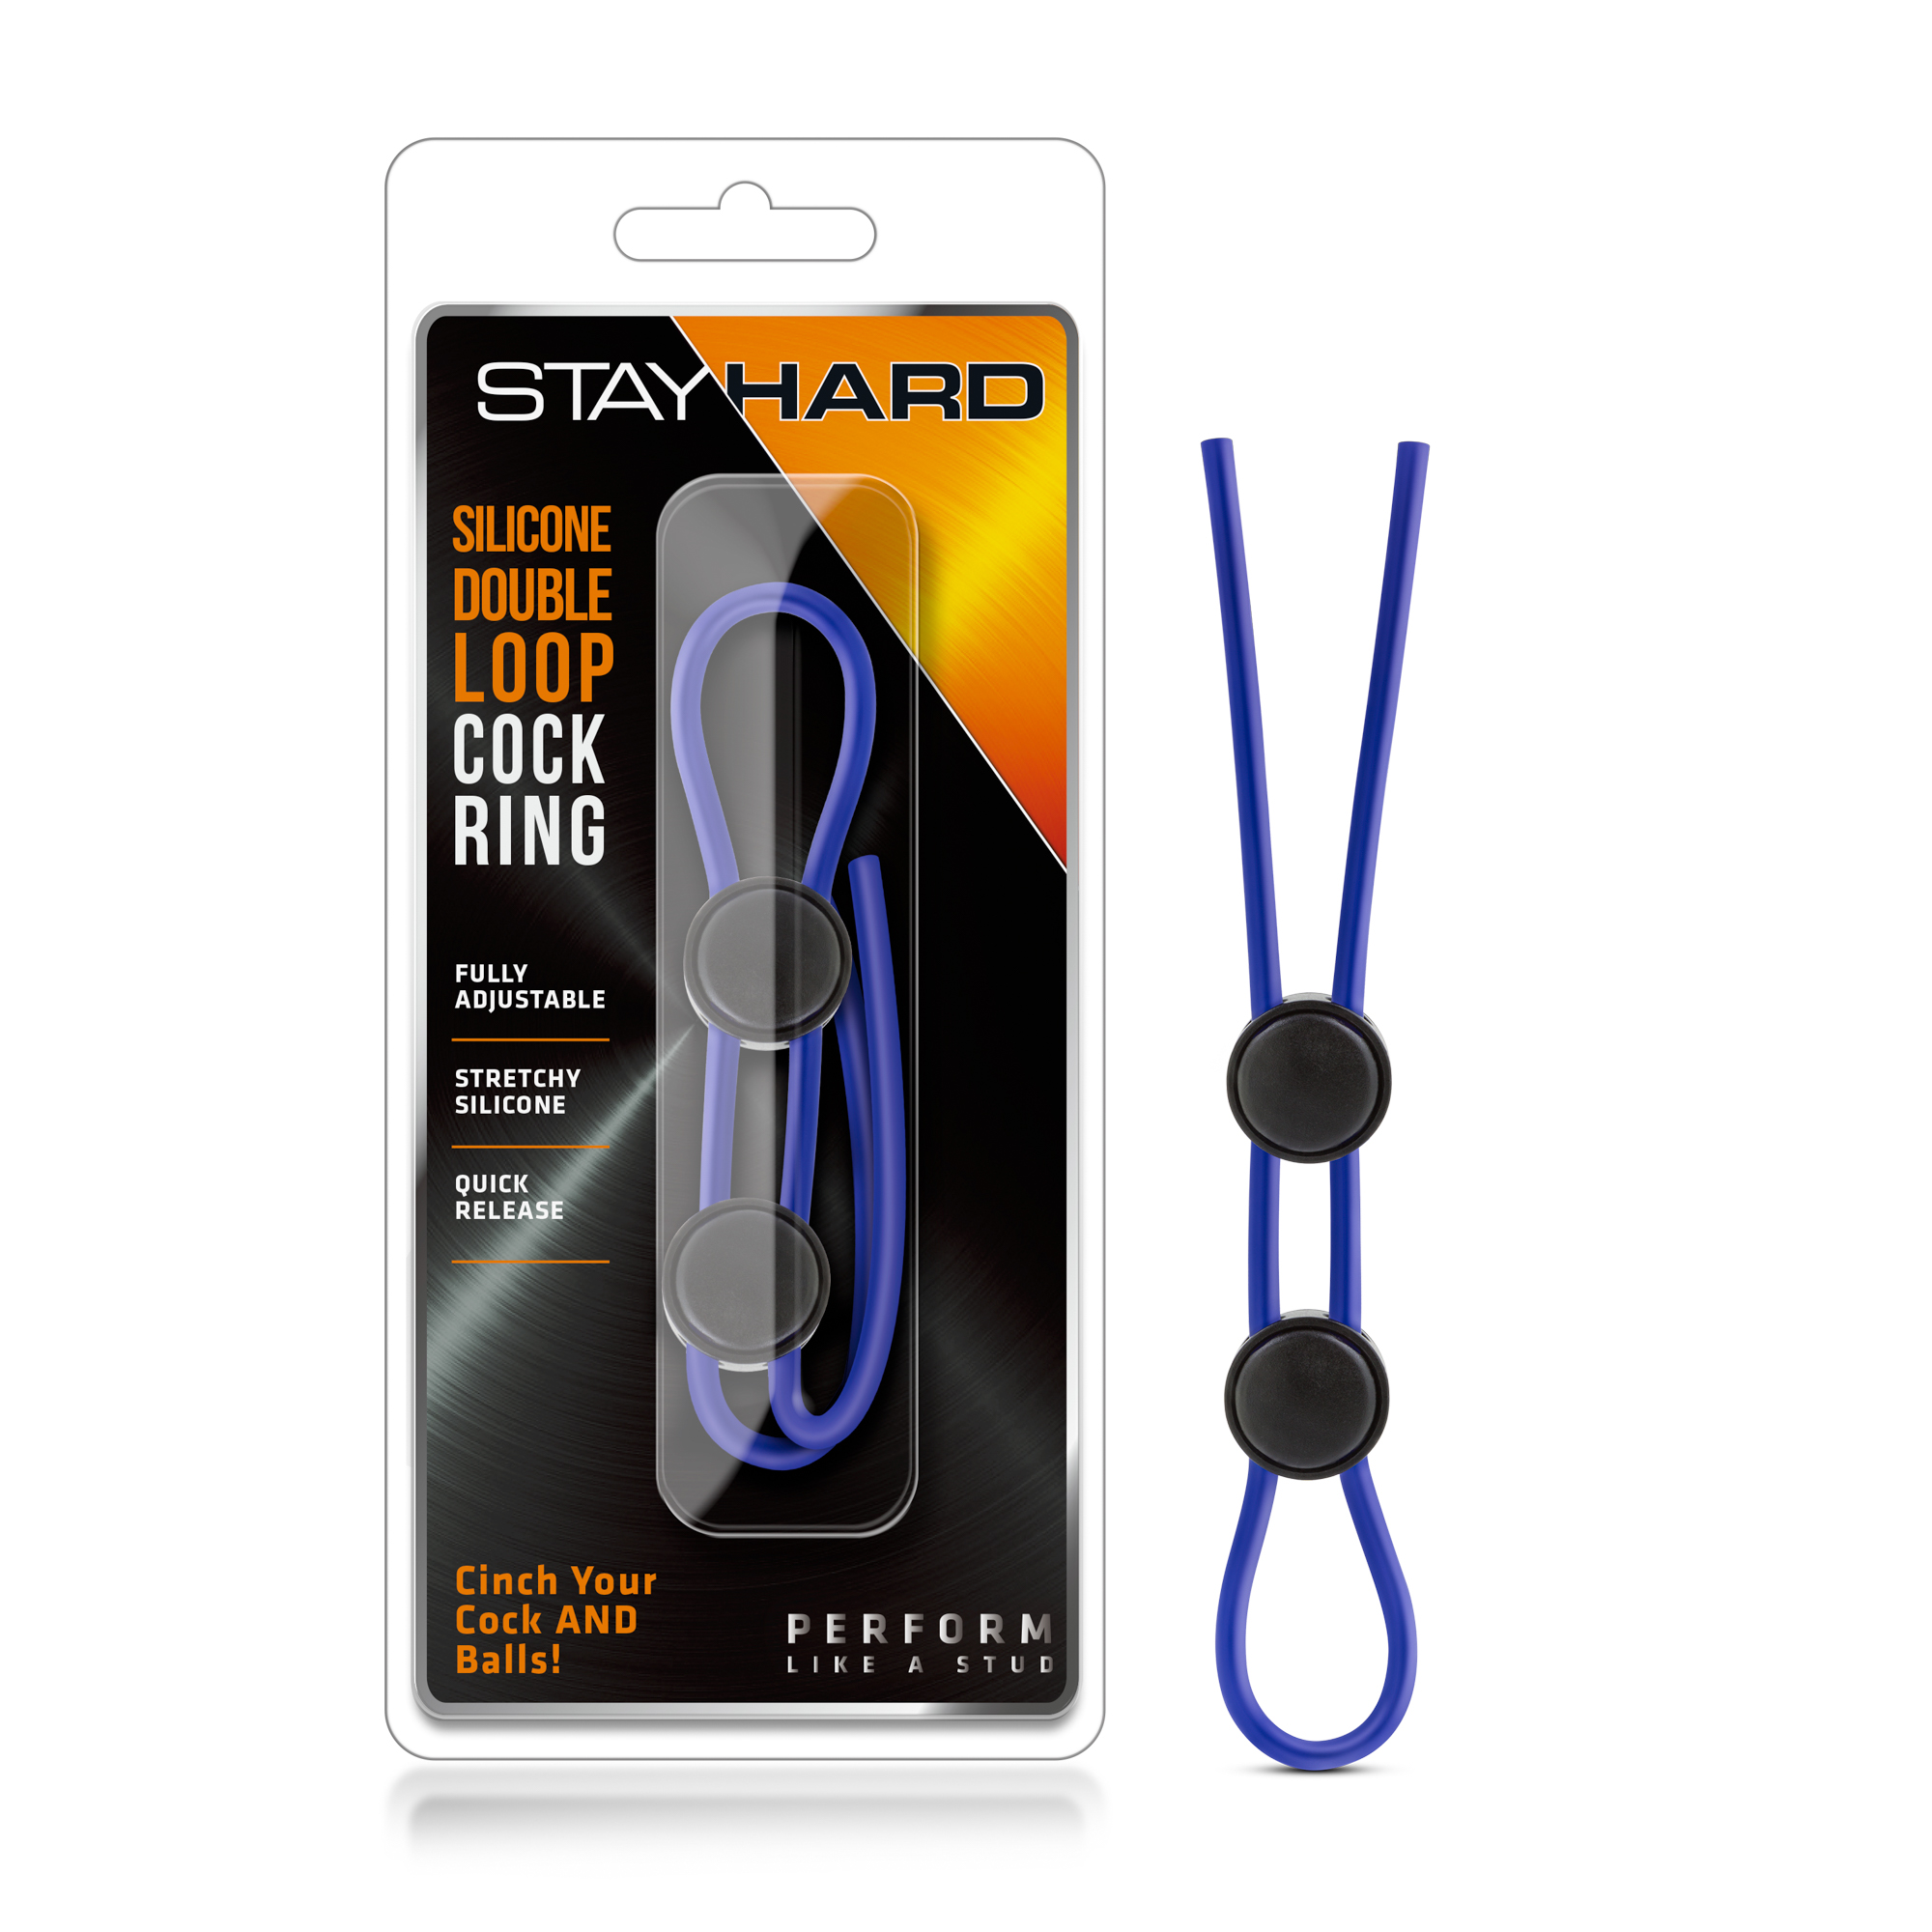 Stay Hard - Silicone Double Loop Cock Ring - Blue